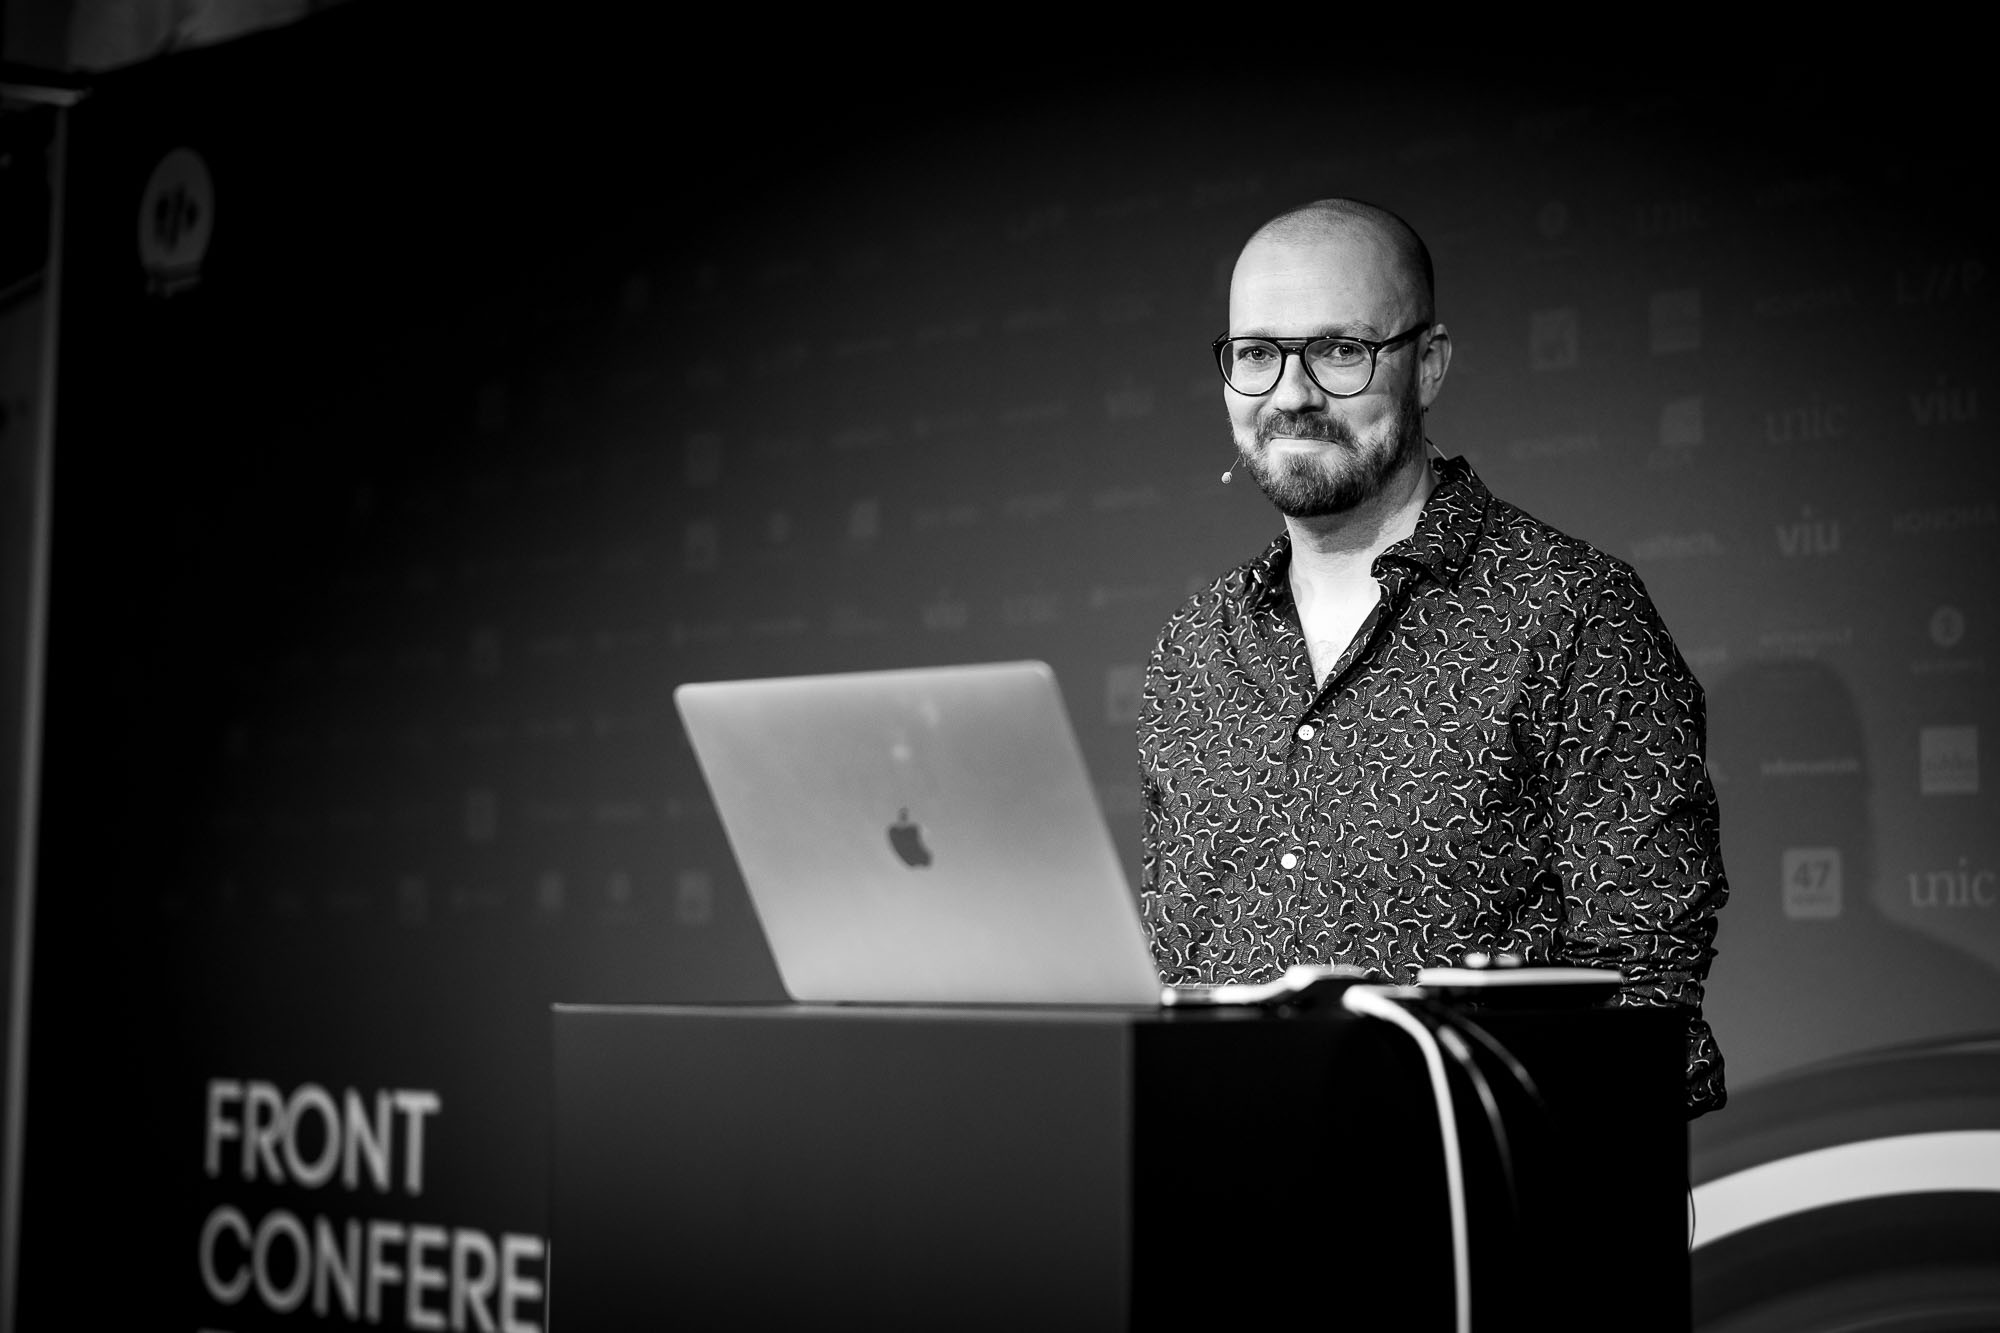 David Aerne on stage at Front Conference 2021